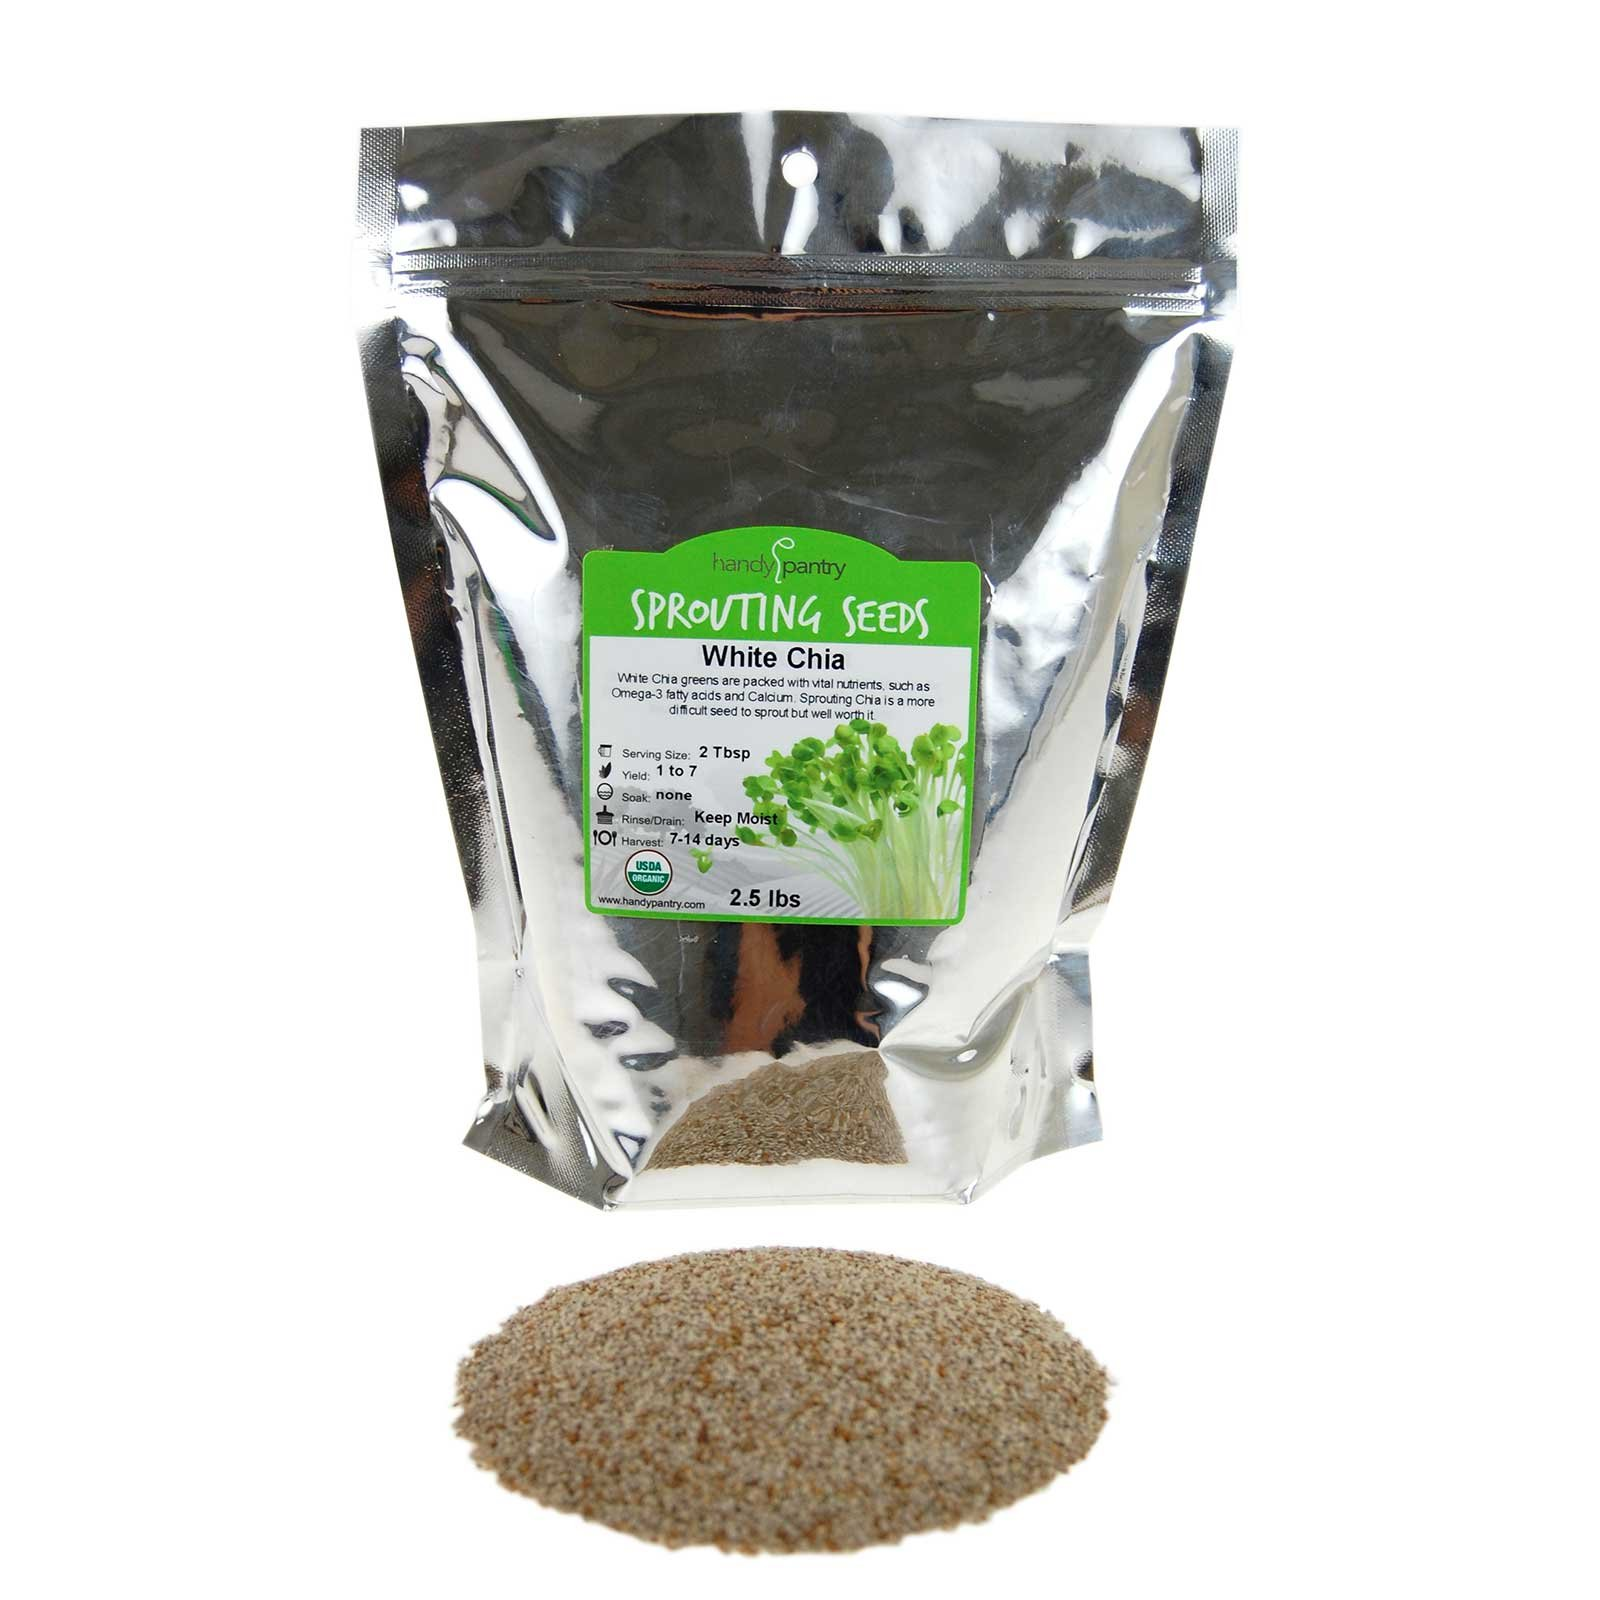 Handy Pantry Organic White Chia Seeds- 2.5 Lbs- Sprouting Seeds for Growing Sprouts, Chia Pet Refills, Food Storage, Sprout Salad by Handy Pantry